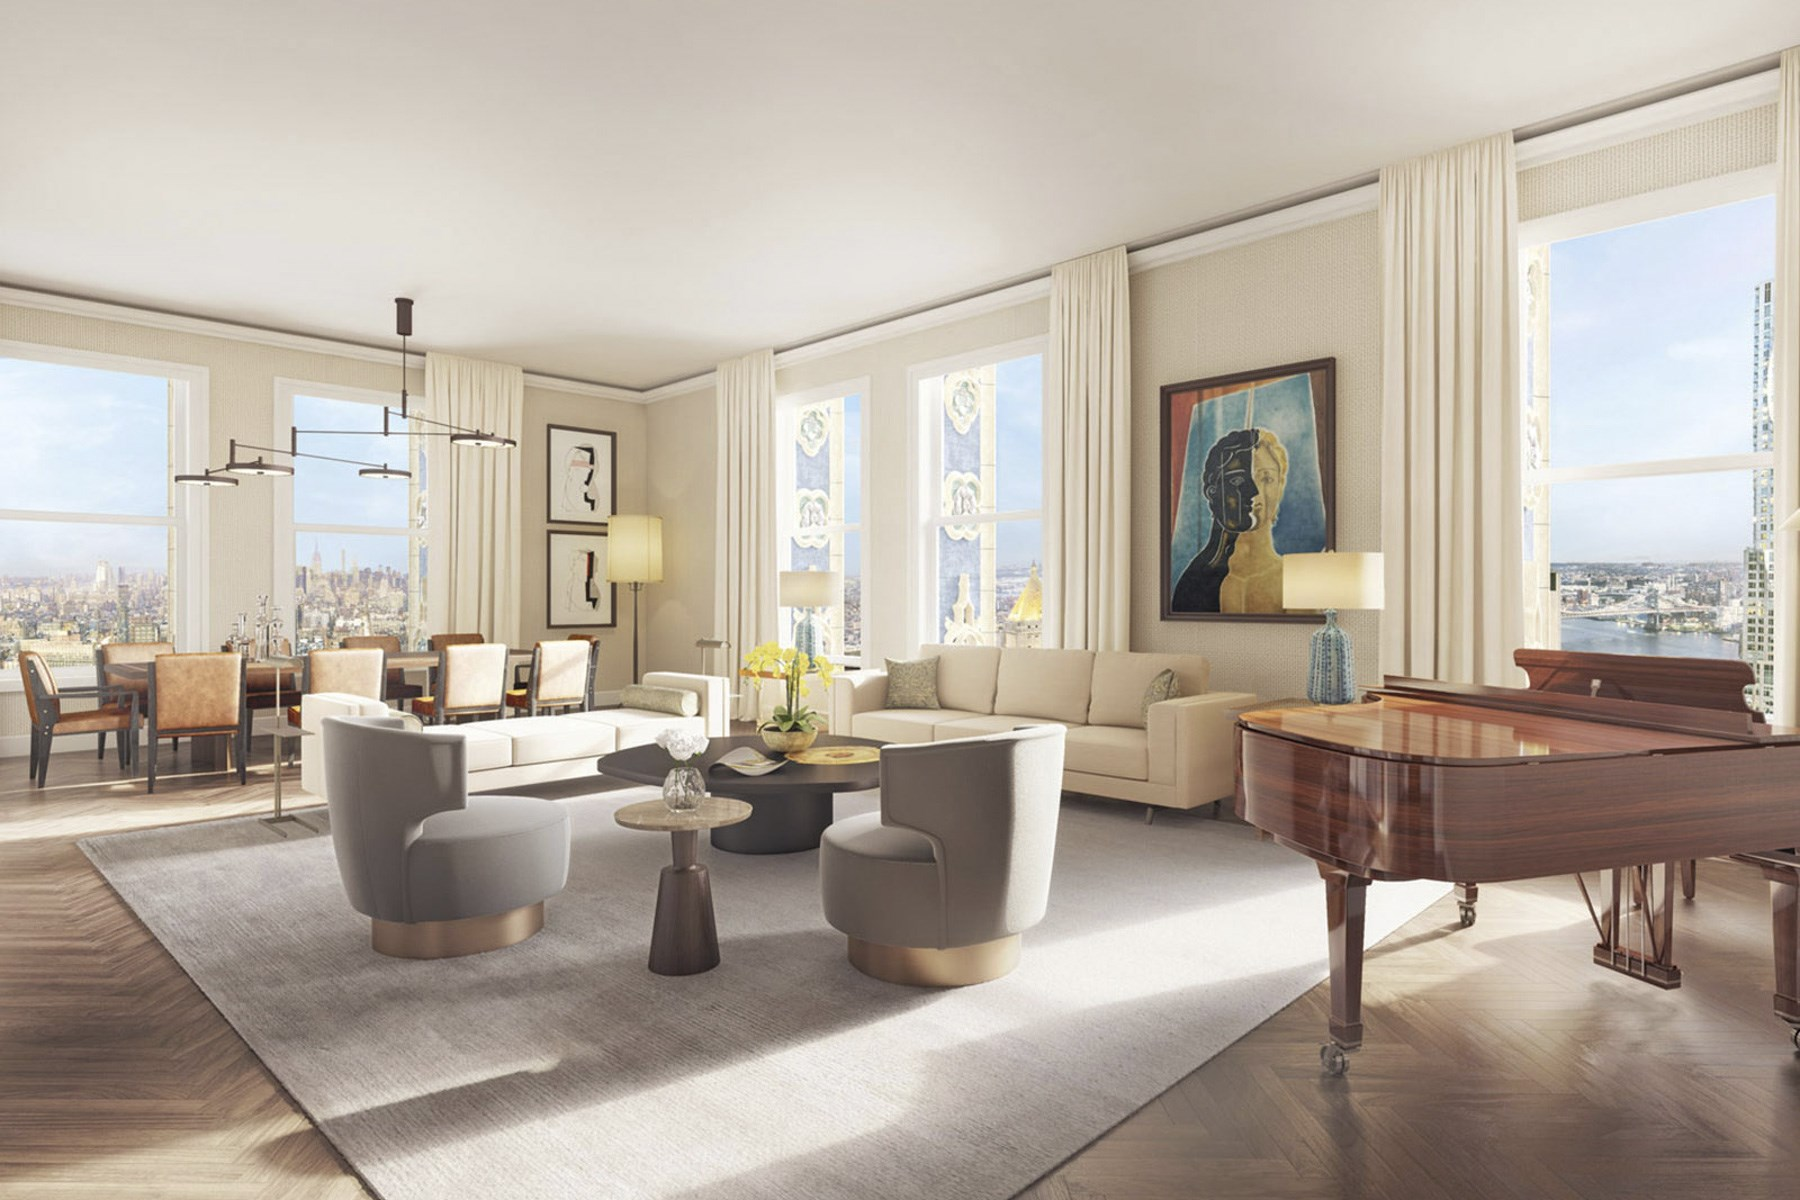 Condominio per Vendita alle ore The Woolworth Tower Residences - 40AB 2 Park Place Apt 40AB, Tribeca, New York, New York, 10007 Stati Uniti